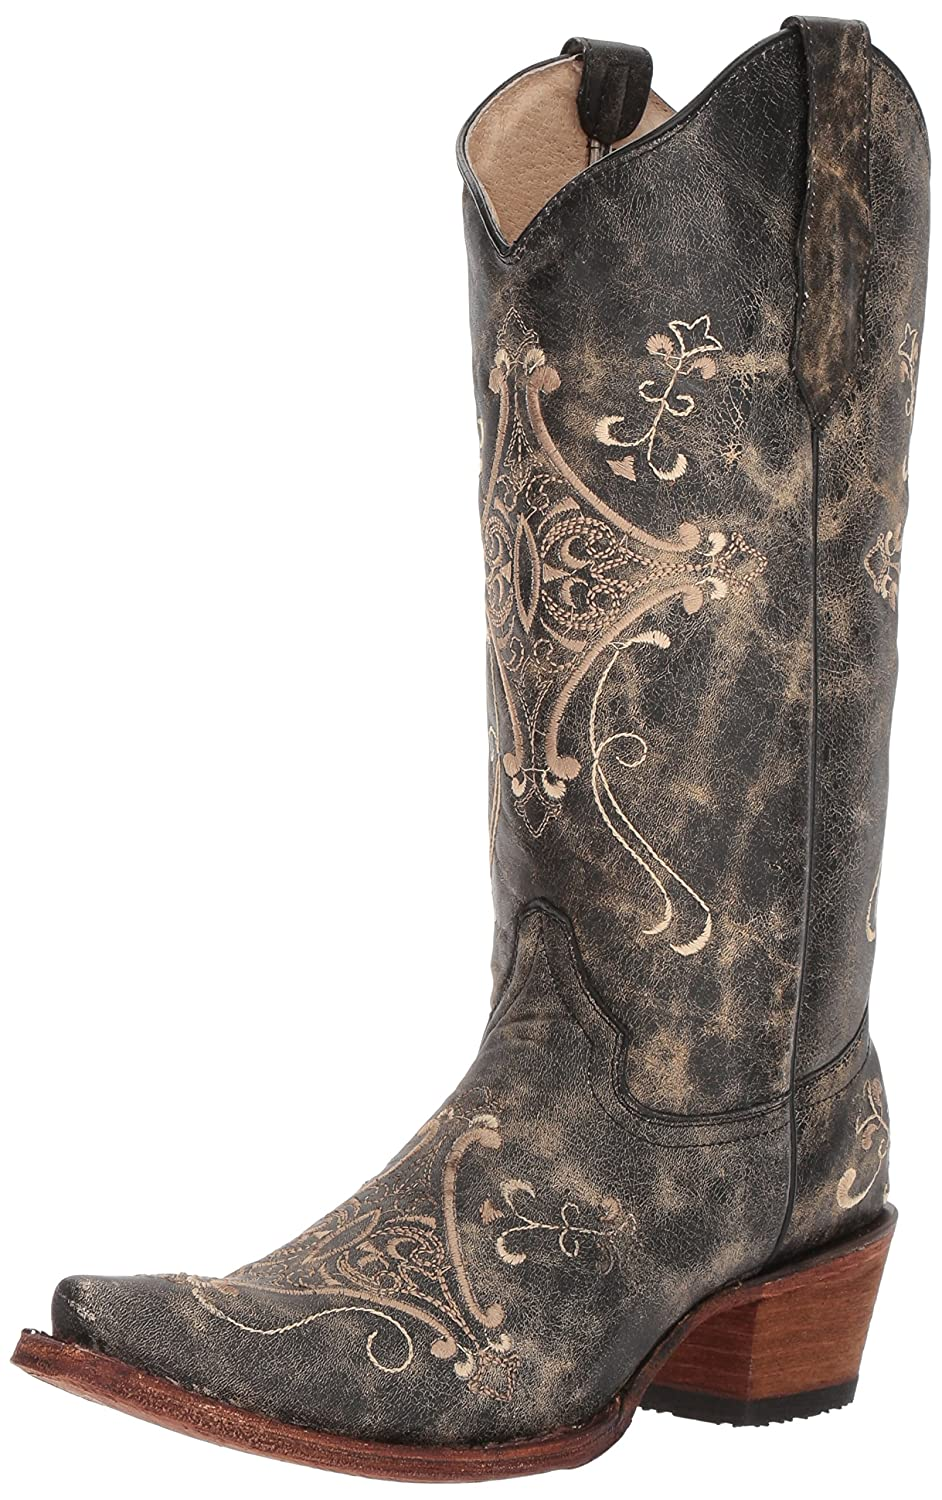 f625a129f15 Amazon.com: Corral Women's Circle G Crackle Scroll Bone Embroidered Western  Boot: Sports & Outdoors